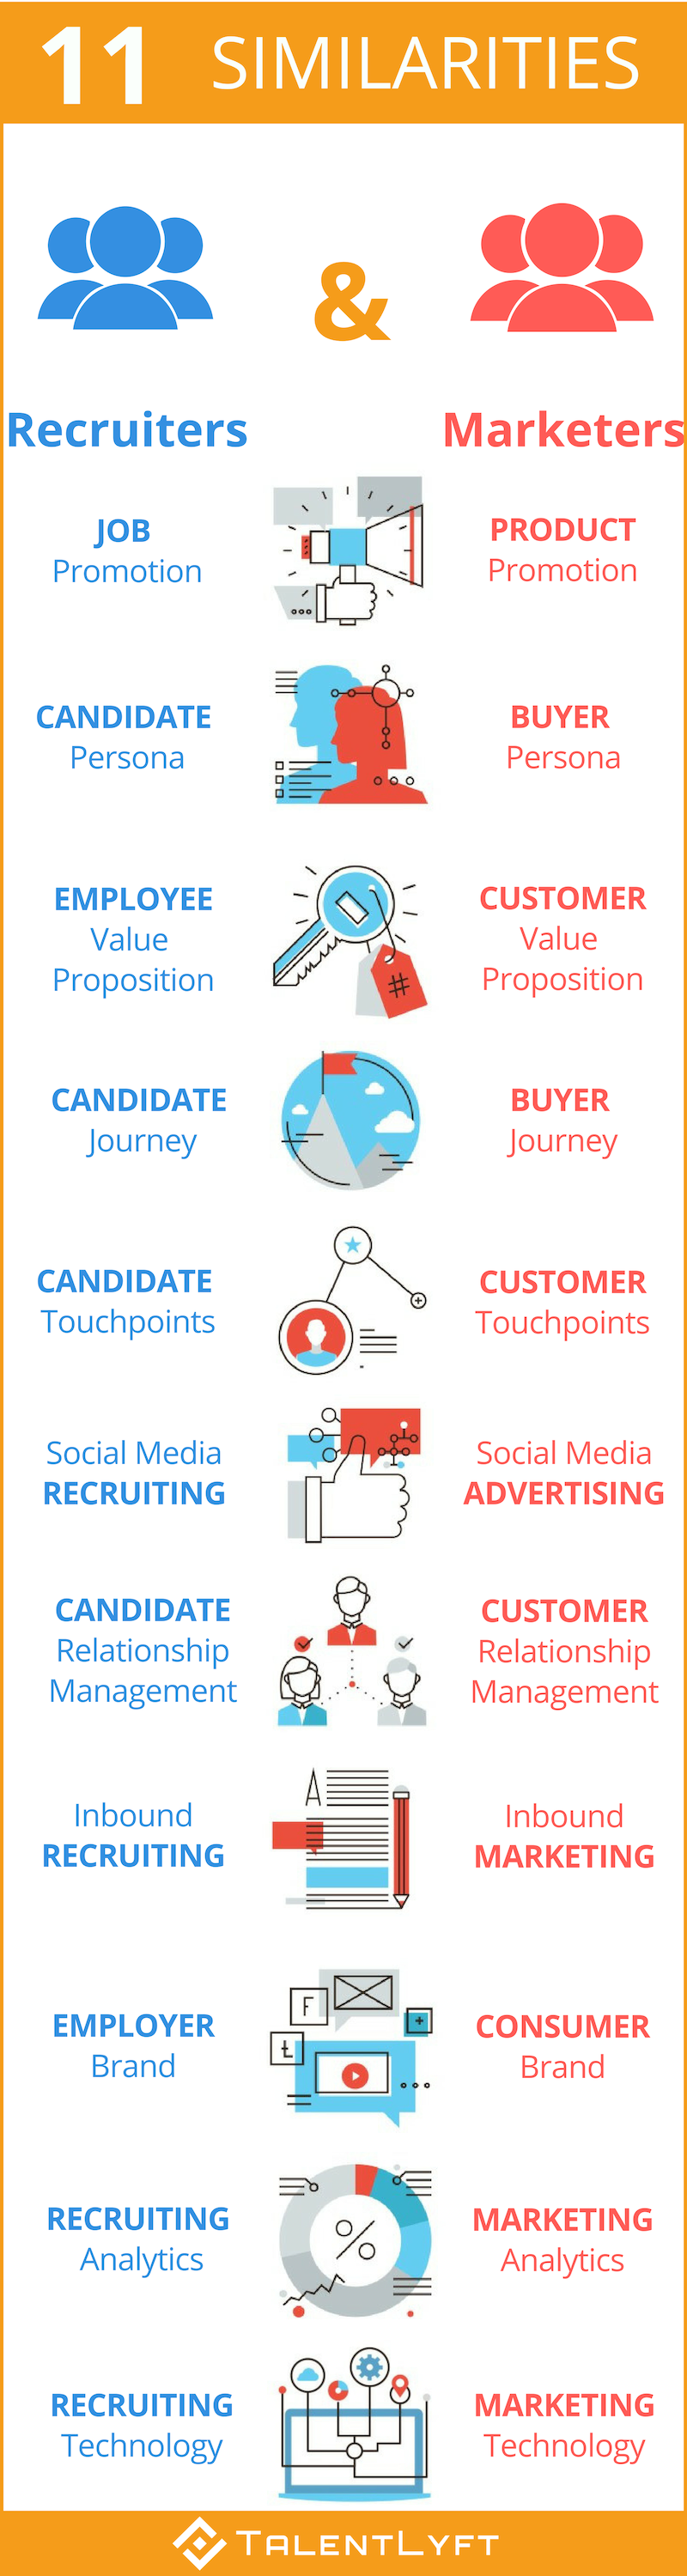 Recruiters-Marketers-similarities-infographic